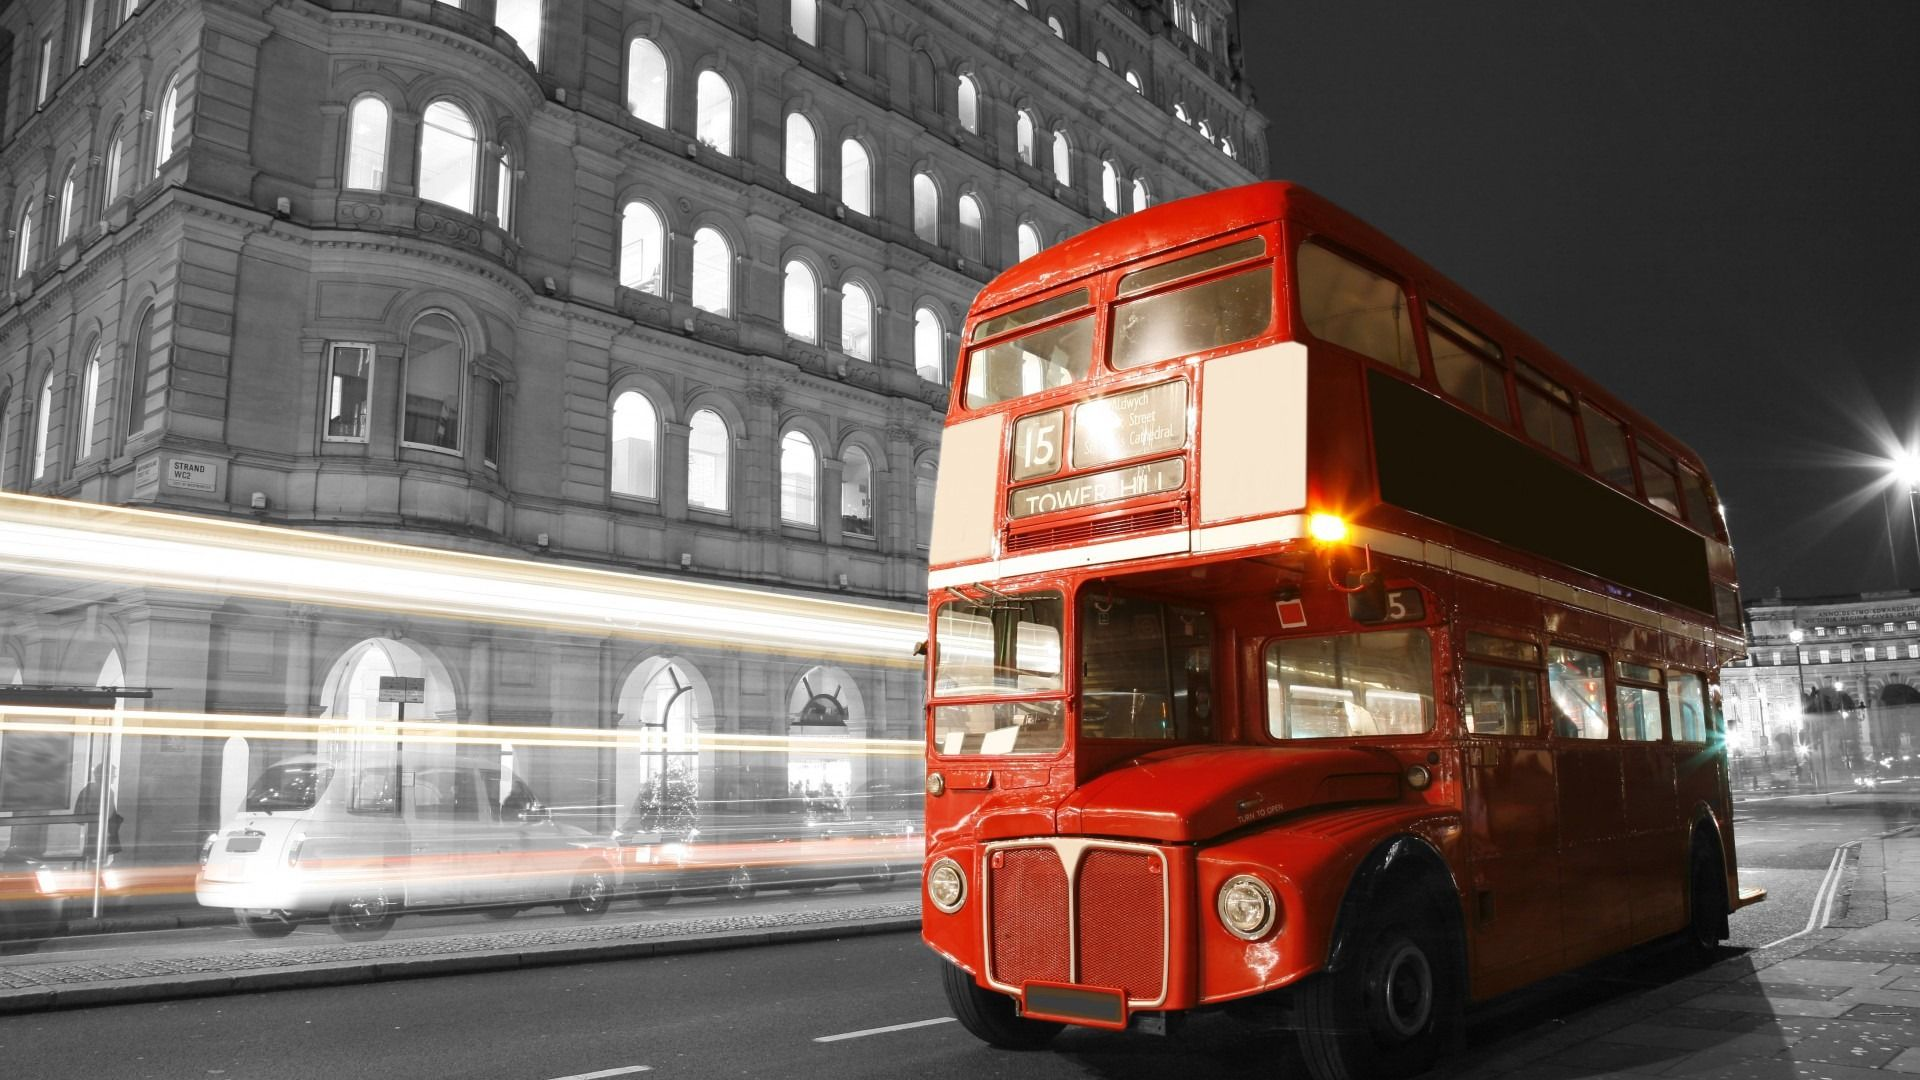 London Bus Hd Wallpapers 1080p Imagesize 19201080 With Images